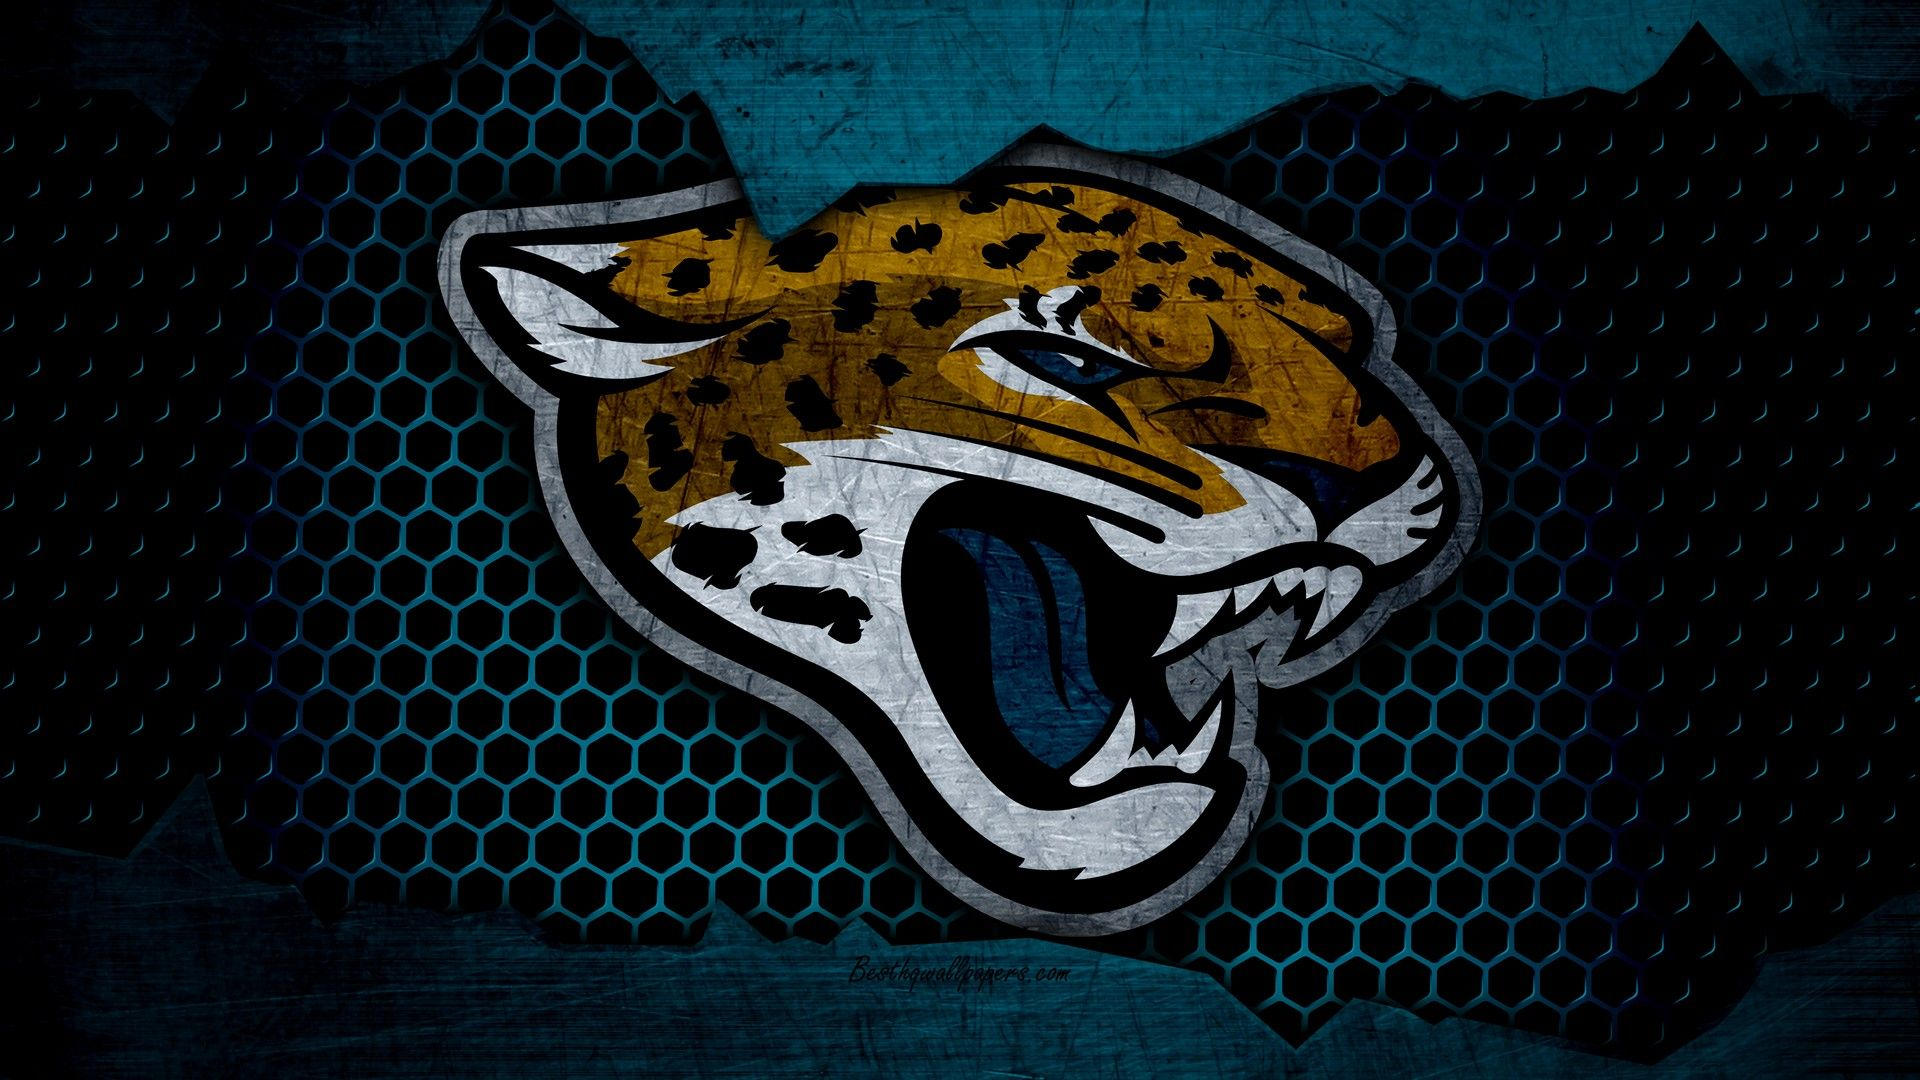 Jacksonville Jaguars Wallpaper HD Wallpapers Nfl football 1920x1080